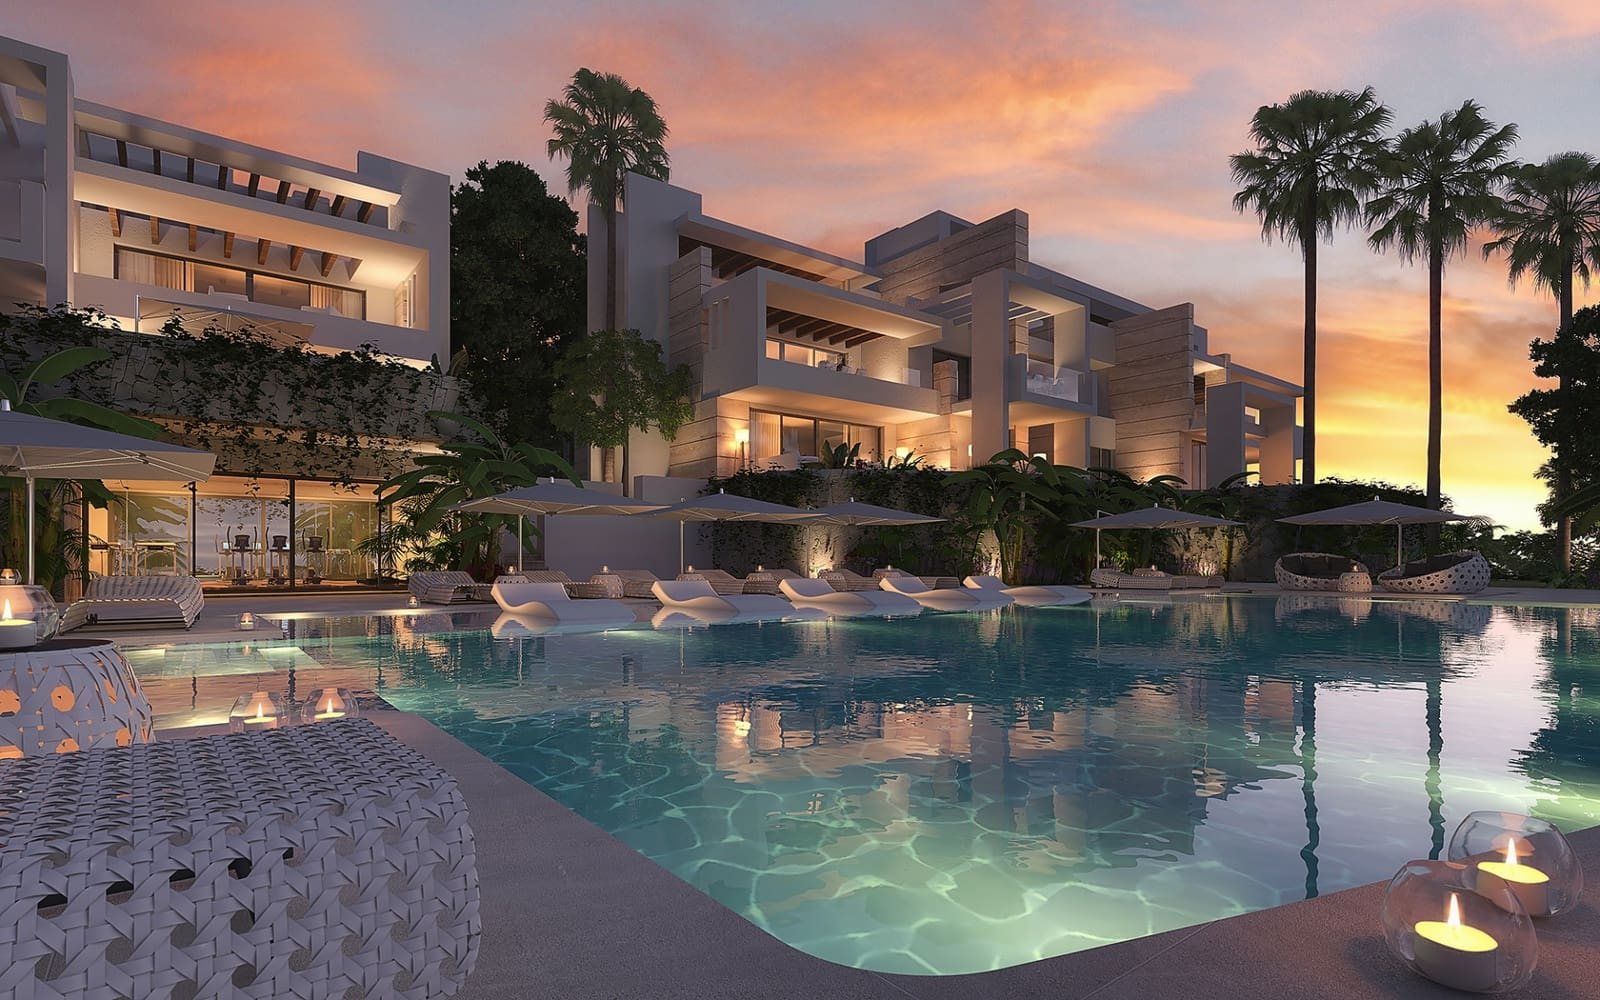 3 bedroom Apartment for sale in Marbella with pool garage - € 545,000 (Ref: 4233788)